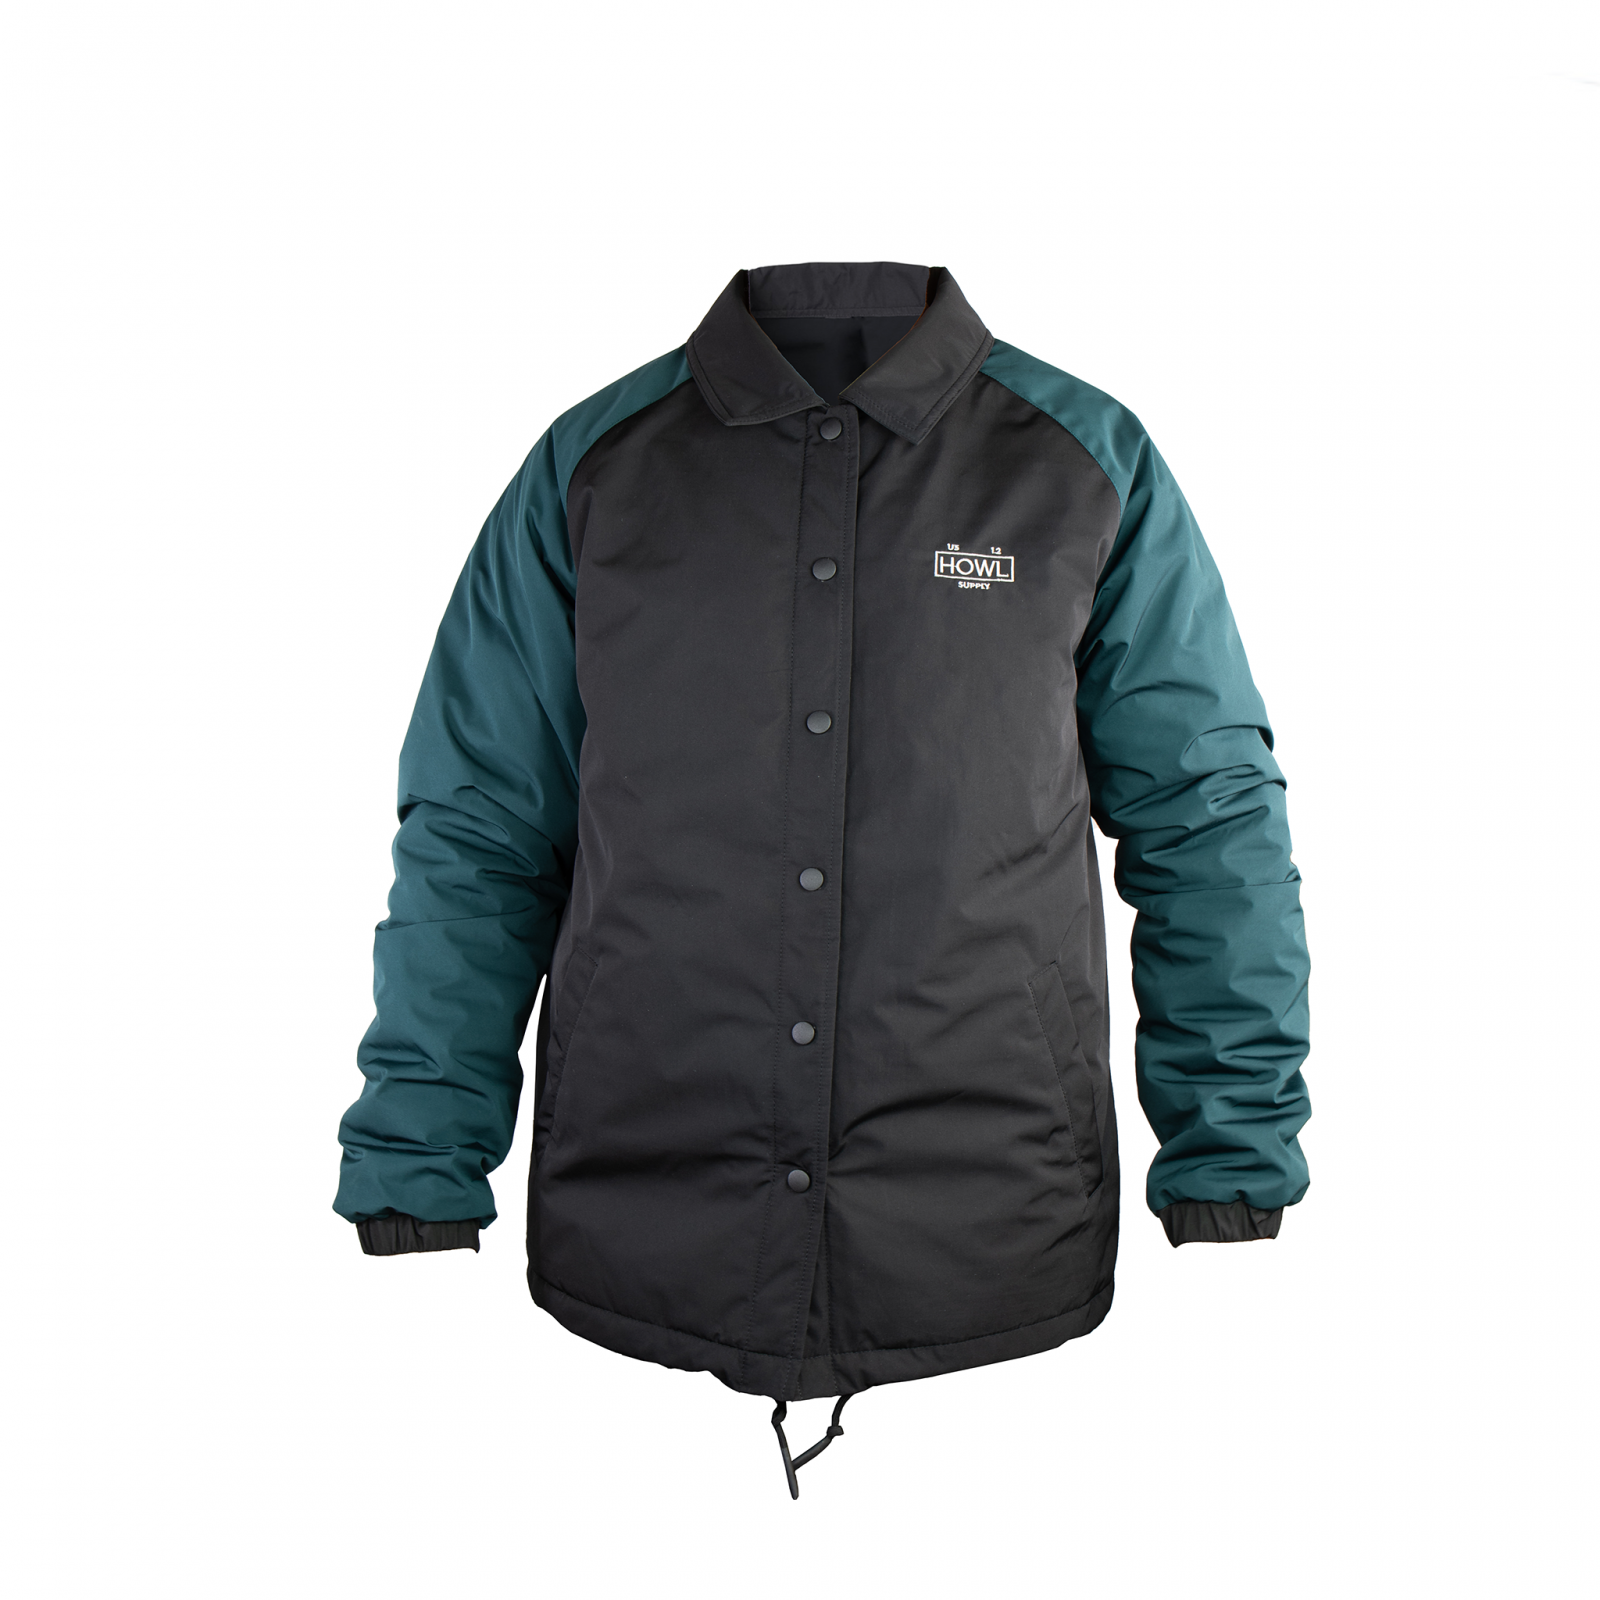 Howl Premium Coaches Jacket